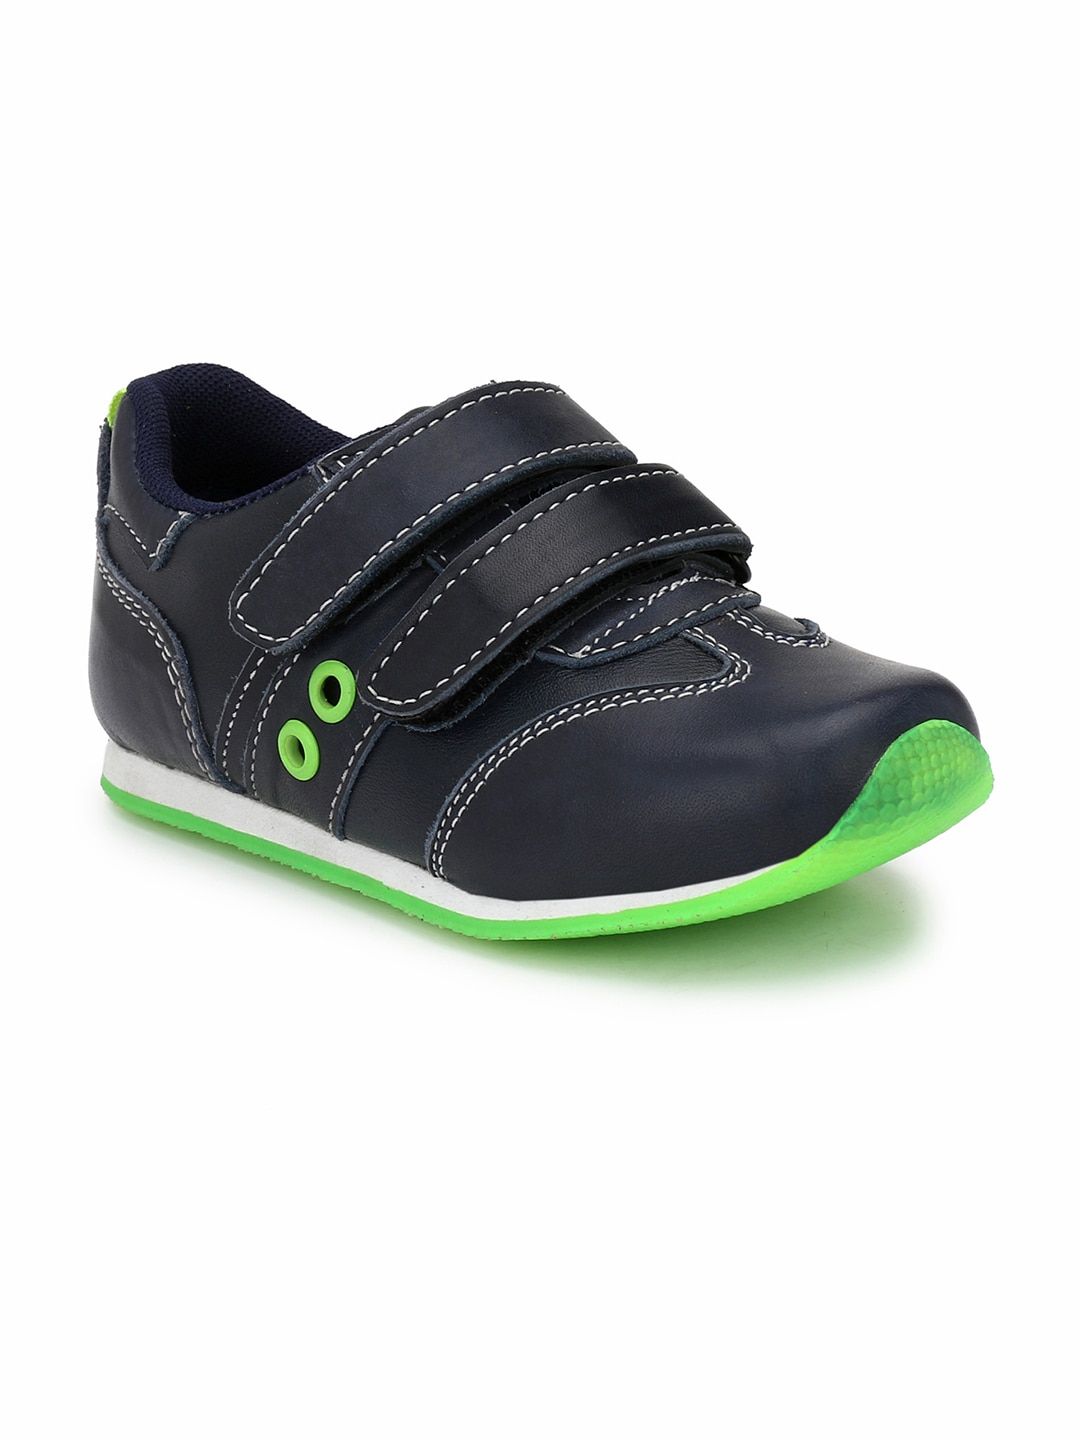 a4f98e7114f Kids Shoes - Buy Shoes for Kids Online in India